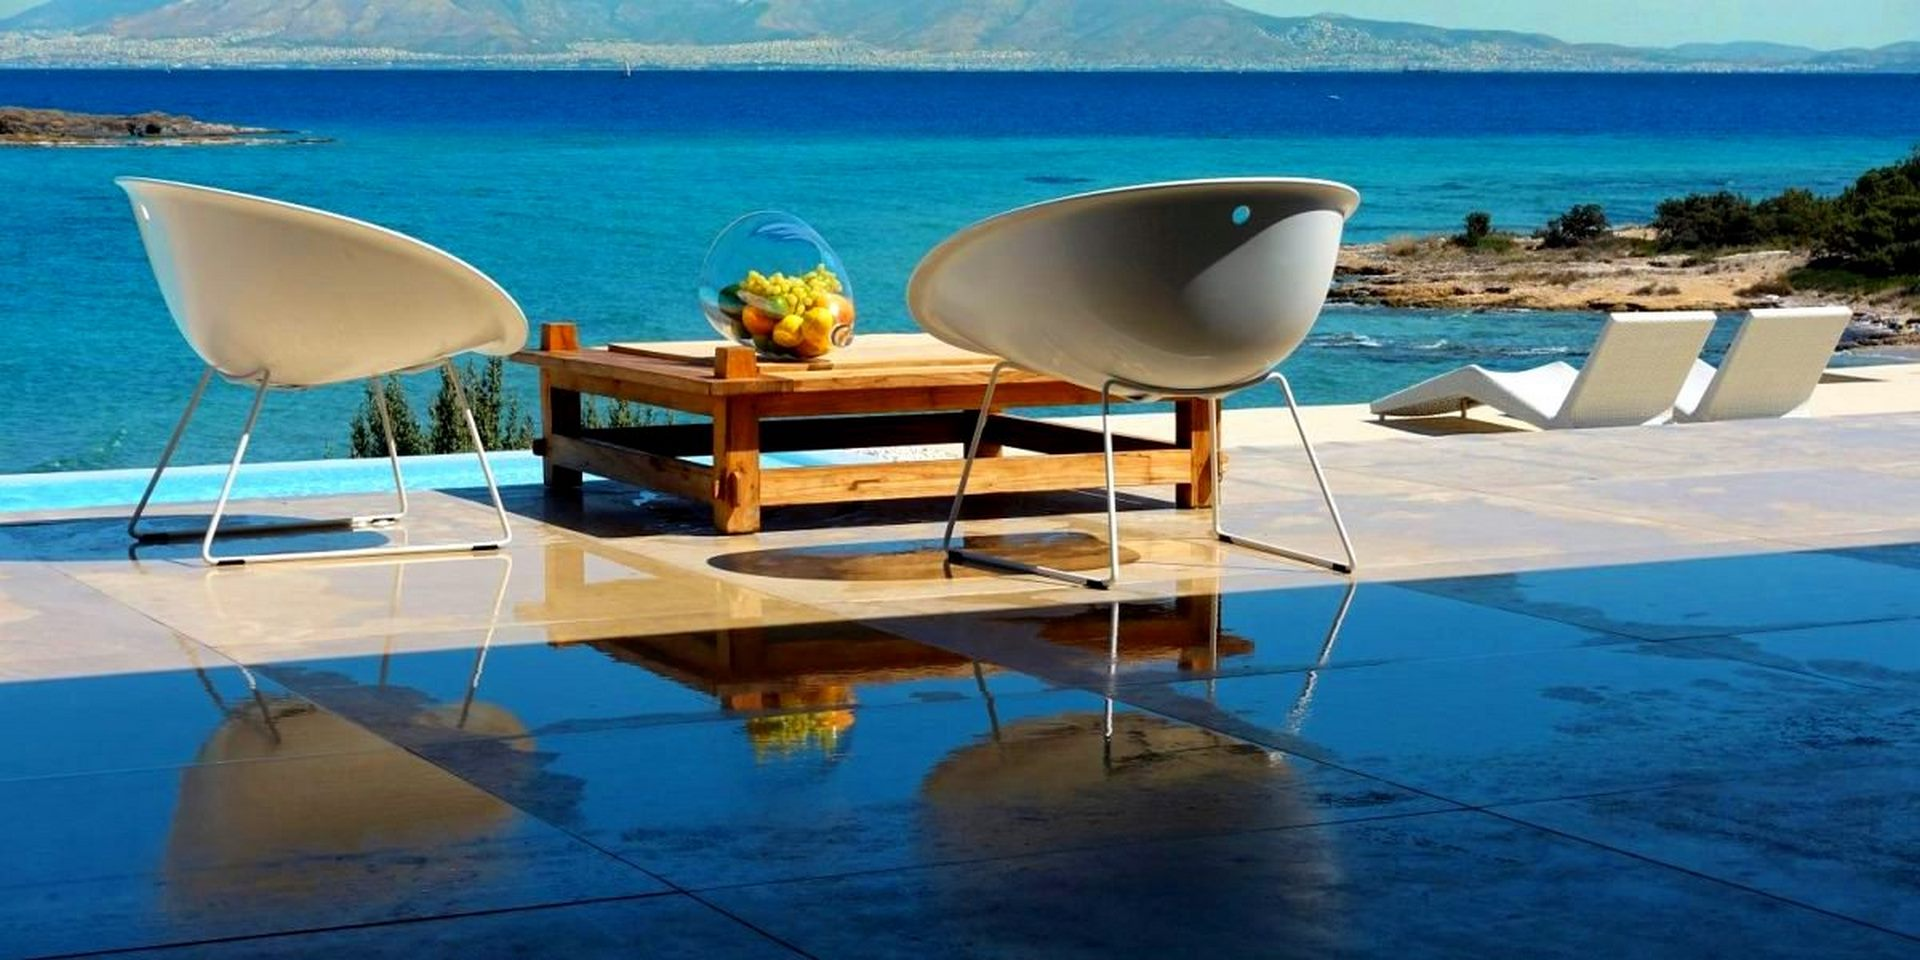 Sea Concept Private Villa in Aegina island - Greece